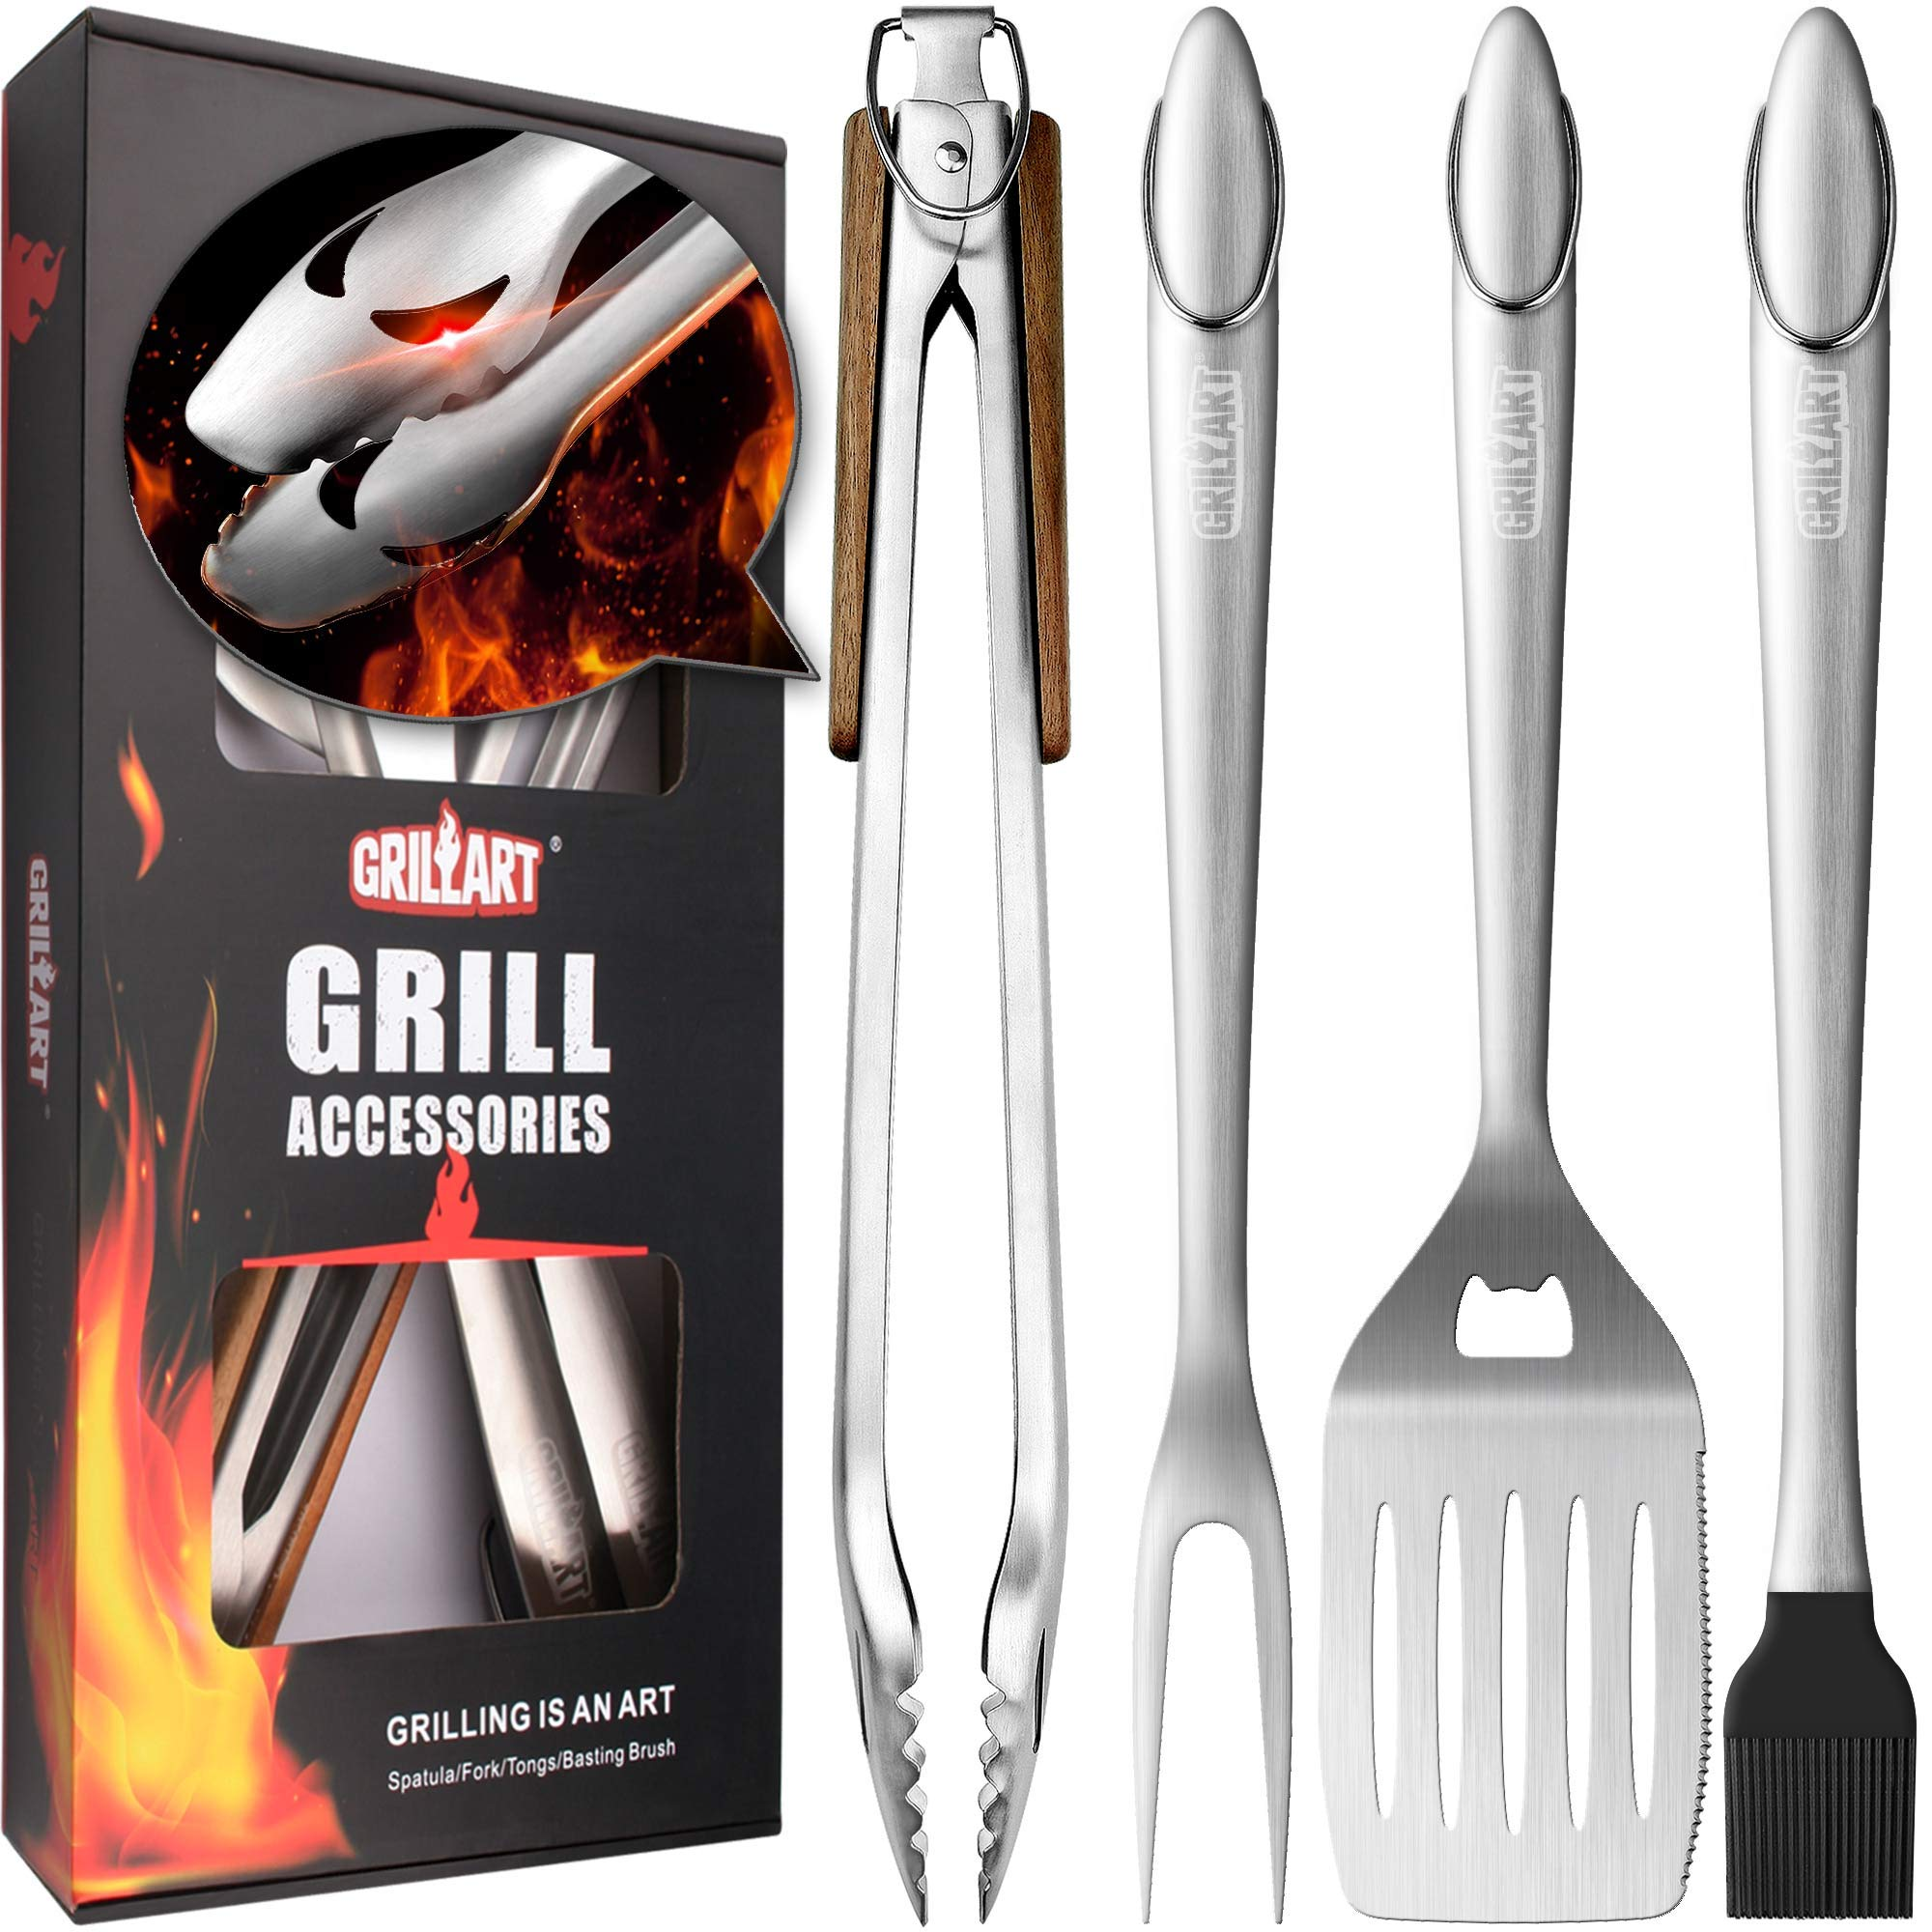 """GRILLART Heavy Duty BBQ Grill Tools Set. Snake-Eyes Design Stainless Steel Grill Utensils Kit - 18"""" Locking Tongs, Spatula, Fork, Basting Brush. Best Barbecue Grilling Accessories, Gift for Men"""